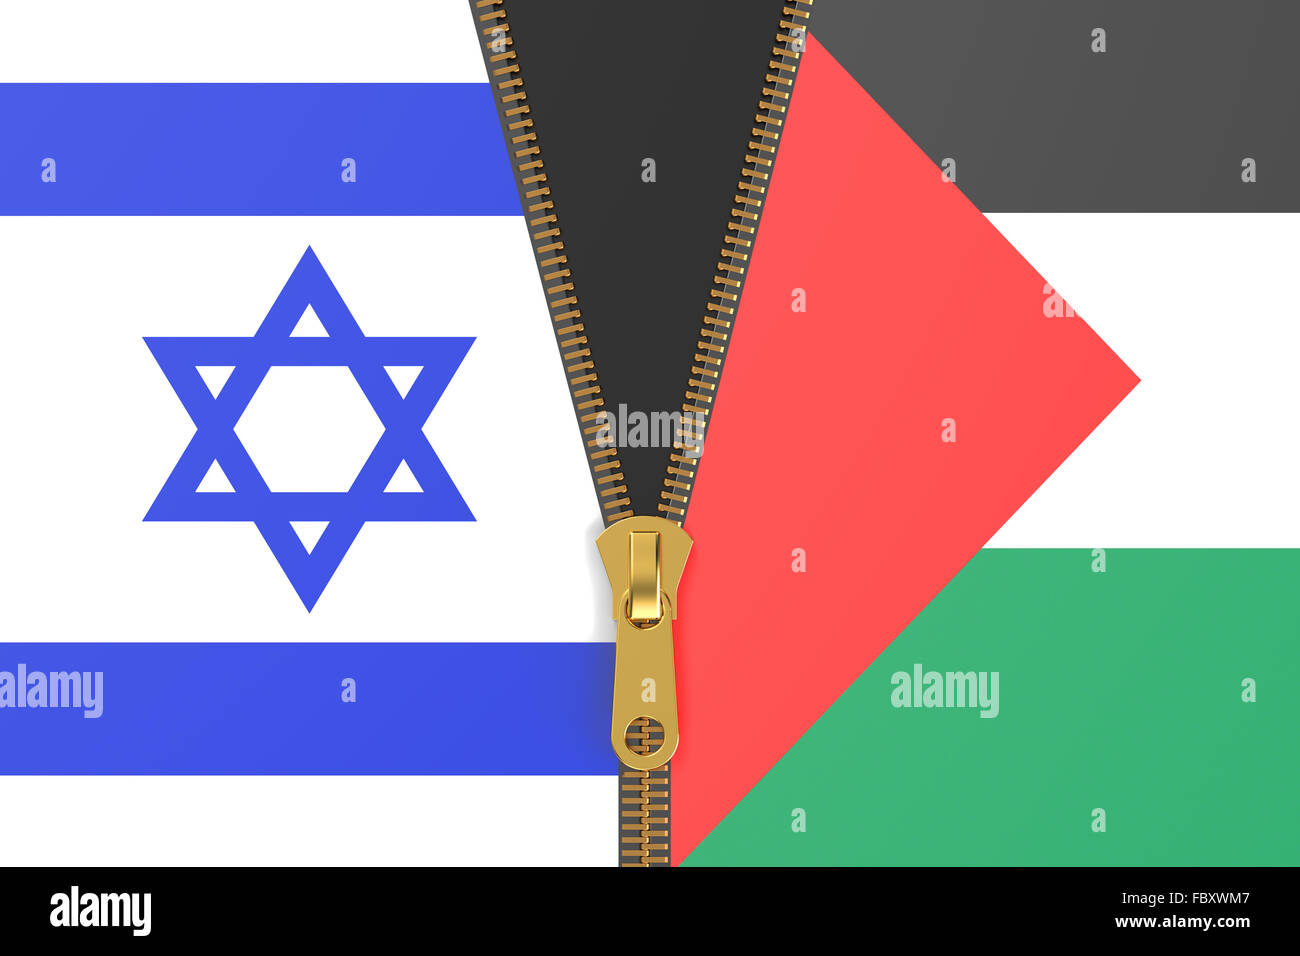 Flags of Israel and Palestine, conflict concept - Stock Image